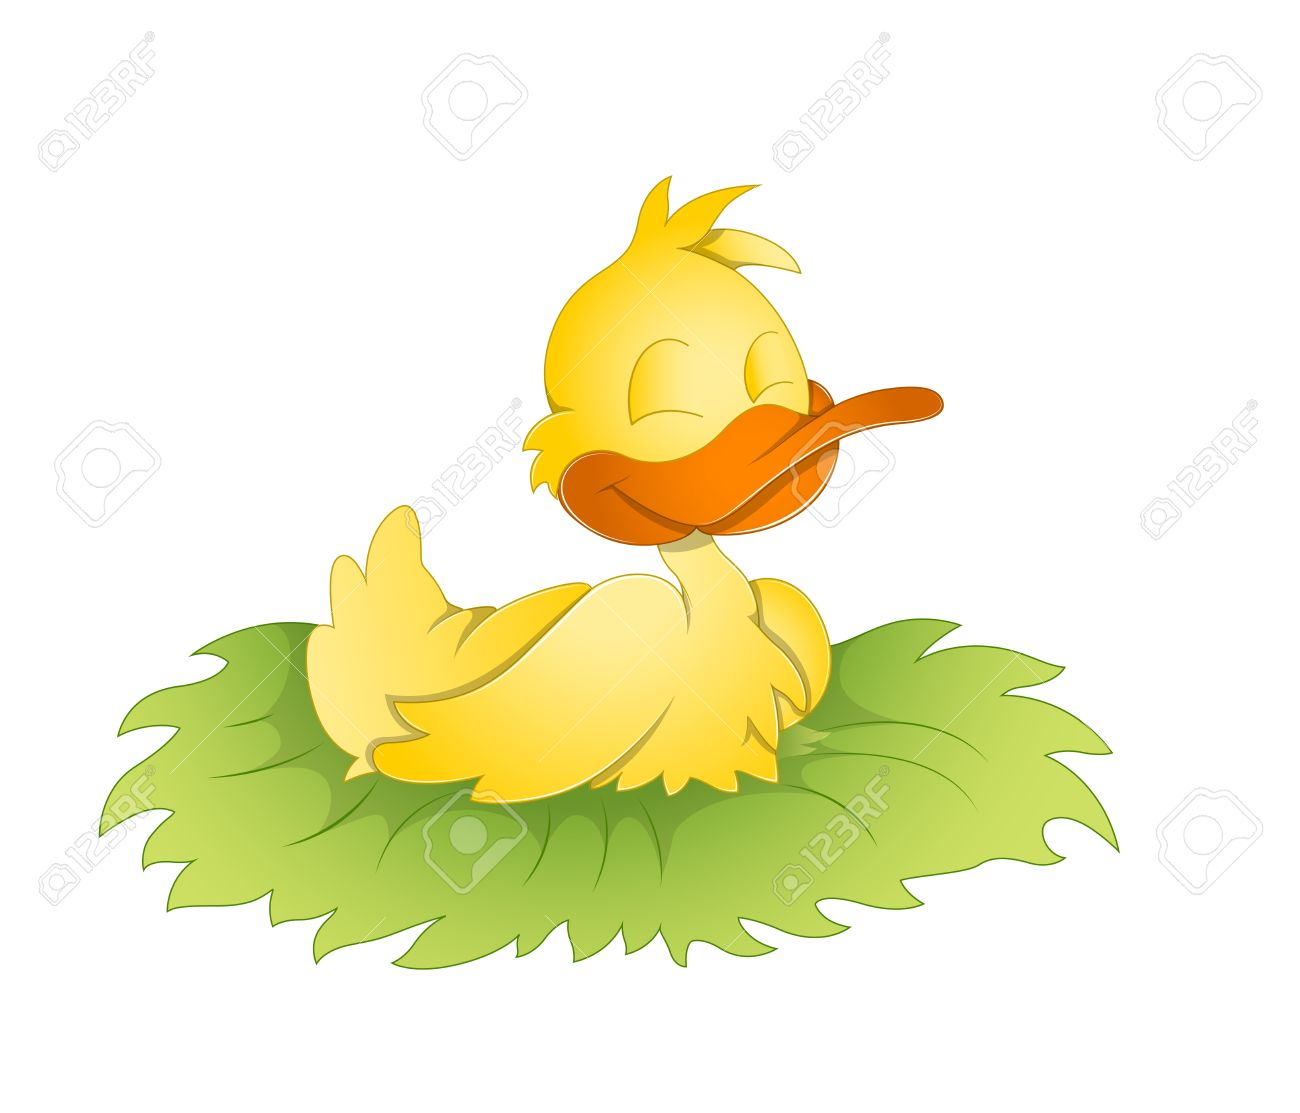 Cute Duck Royalty Free Cliparts, Vectors, And Stock Illustration ...